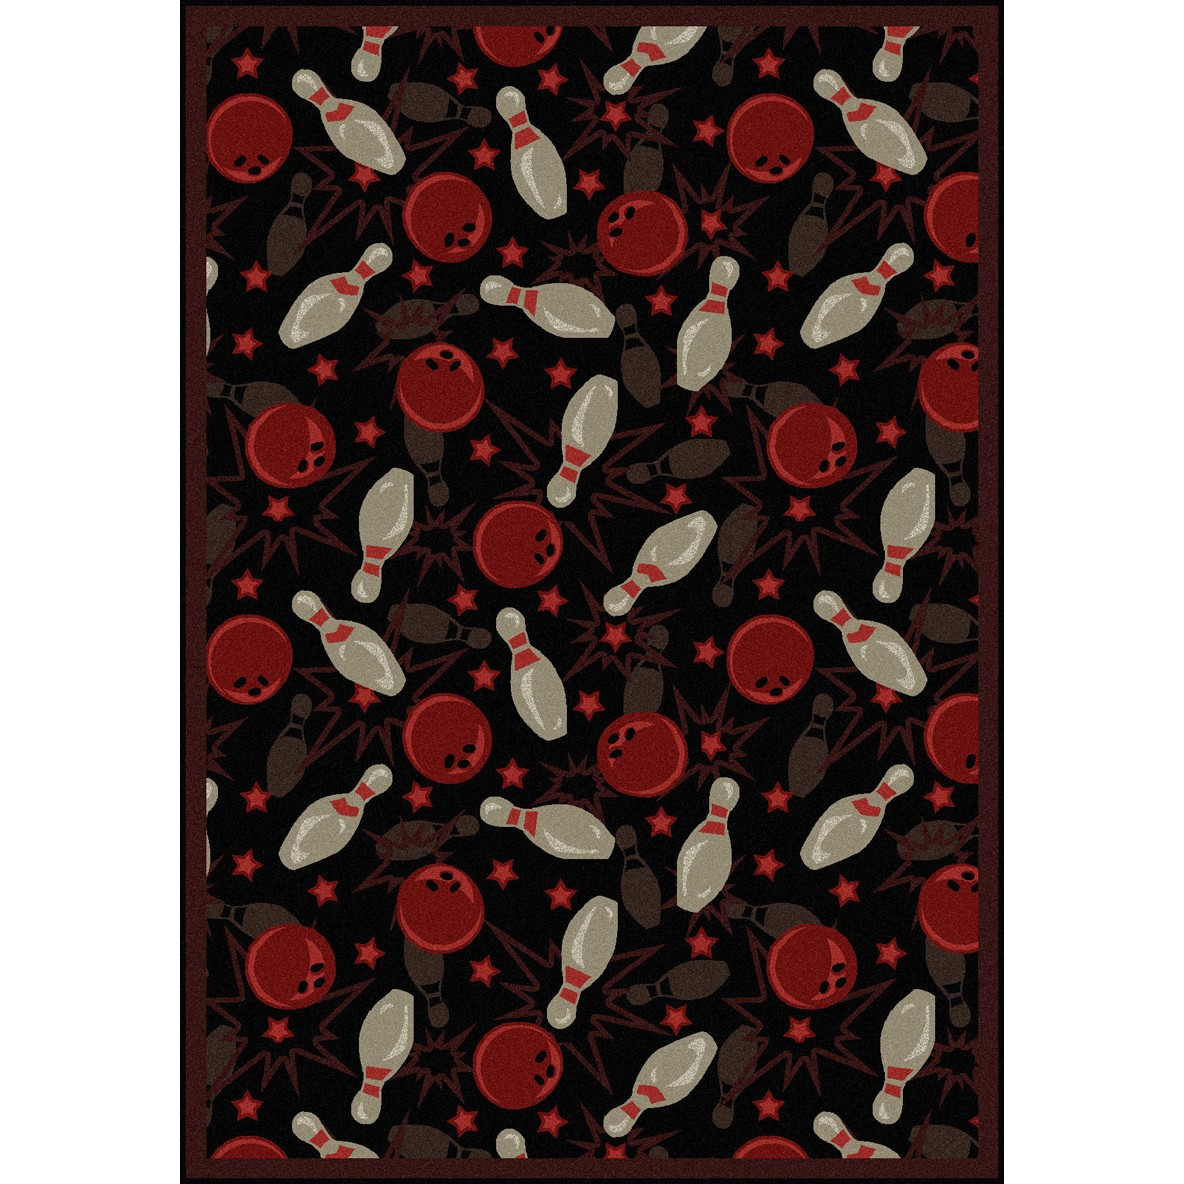 "Joy Rugs Retro Bowl Machine Tufted - Cut Pile Fireball Red 5'4"" x 7'8"" - Area Rug"